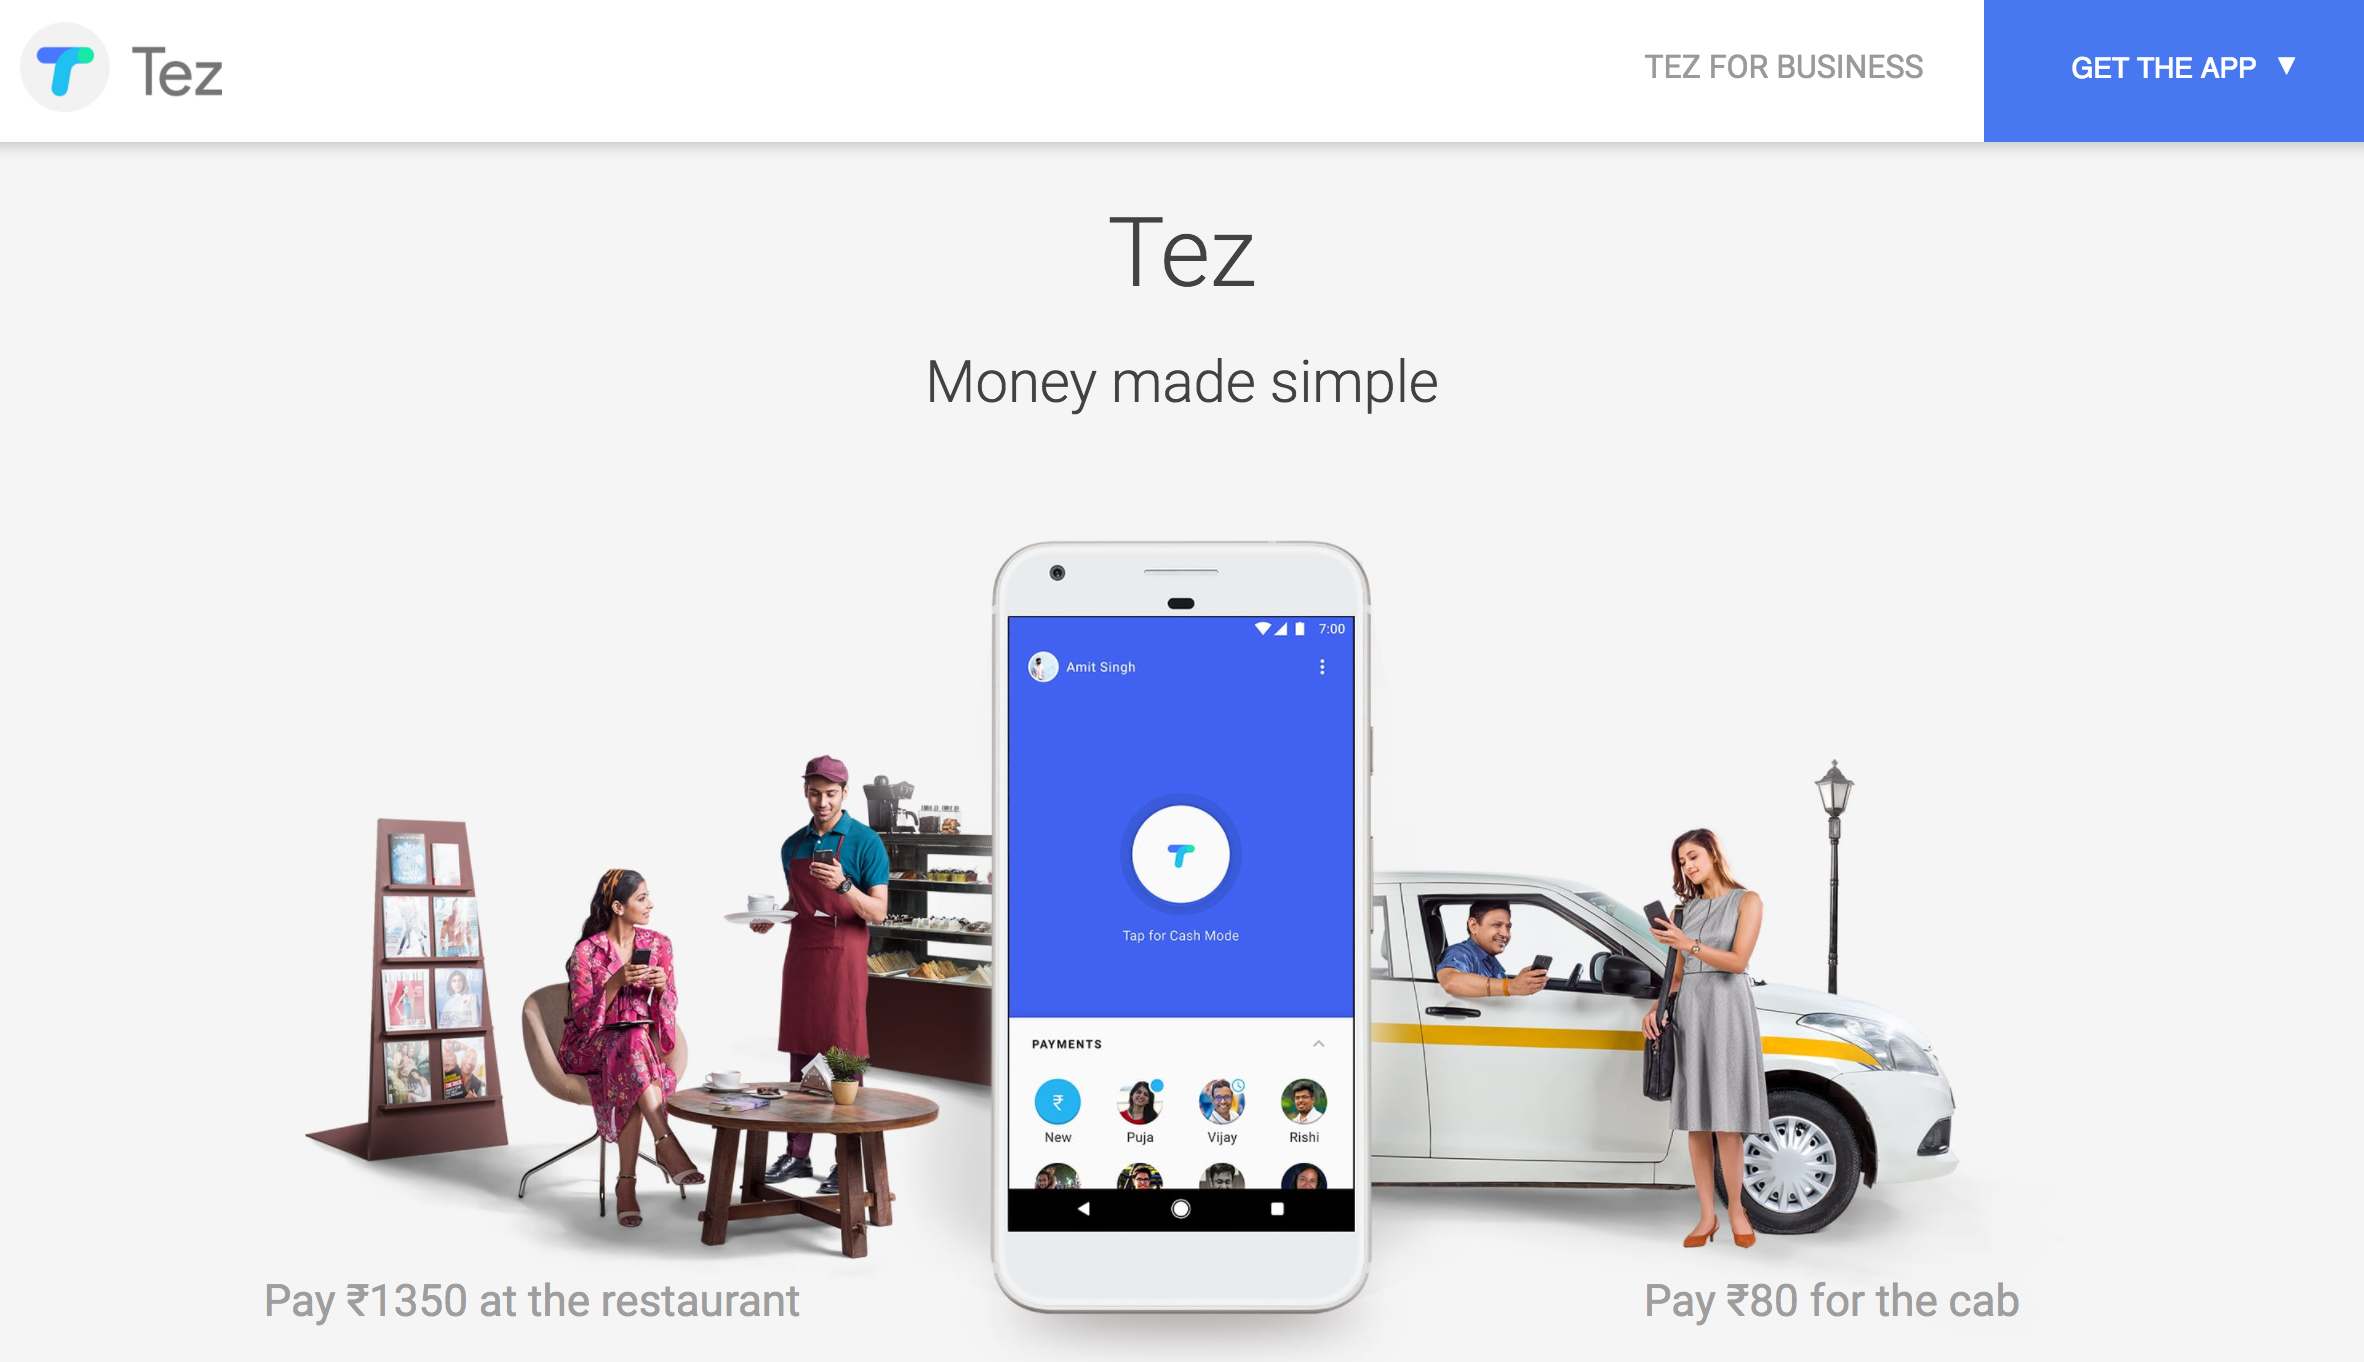 Google debuts Tez, a mobile wallet and payments app for India